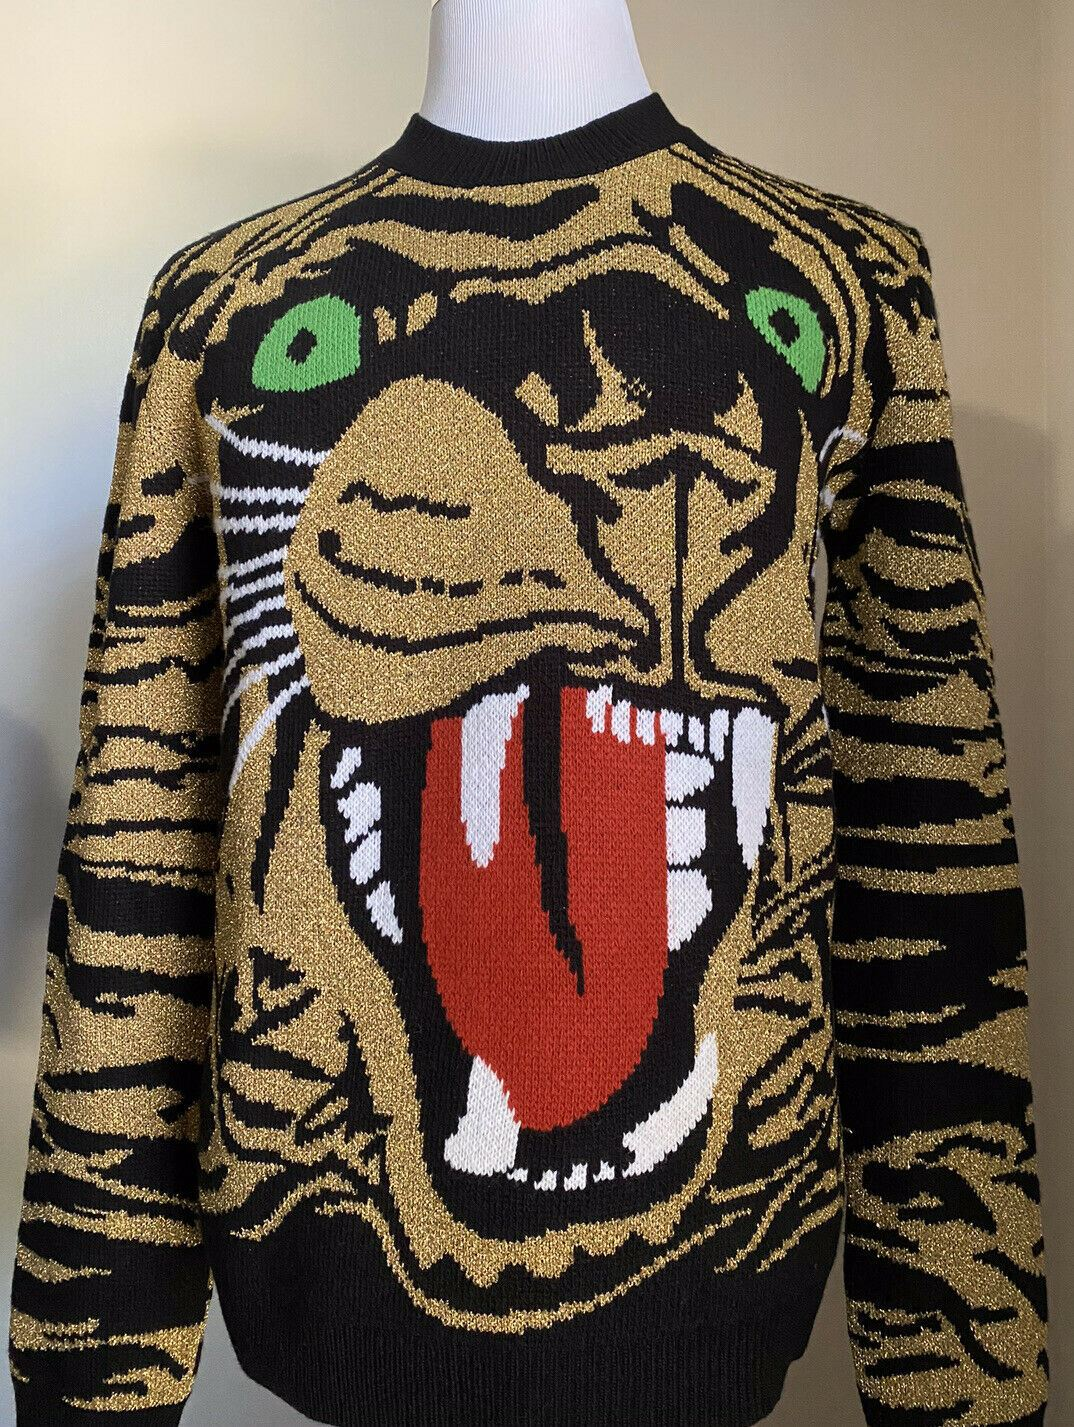 NWT $1500 Gucci Men Tiger Print Crewneck Sweater Black/Gold M Italy